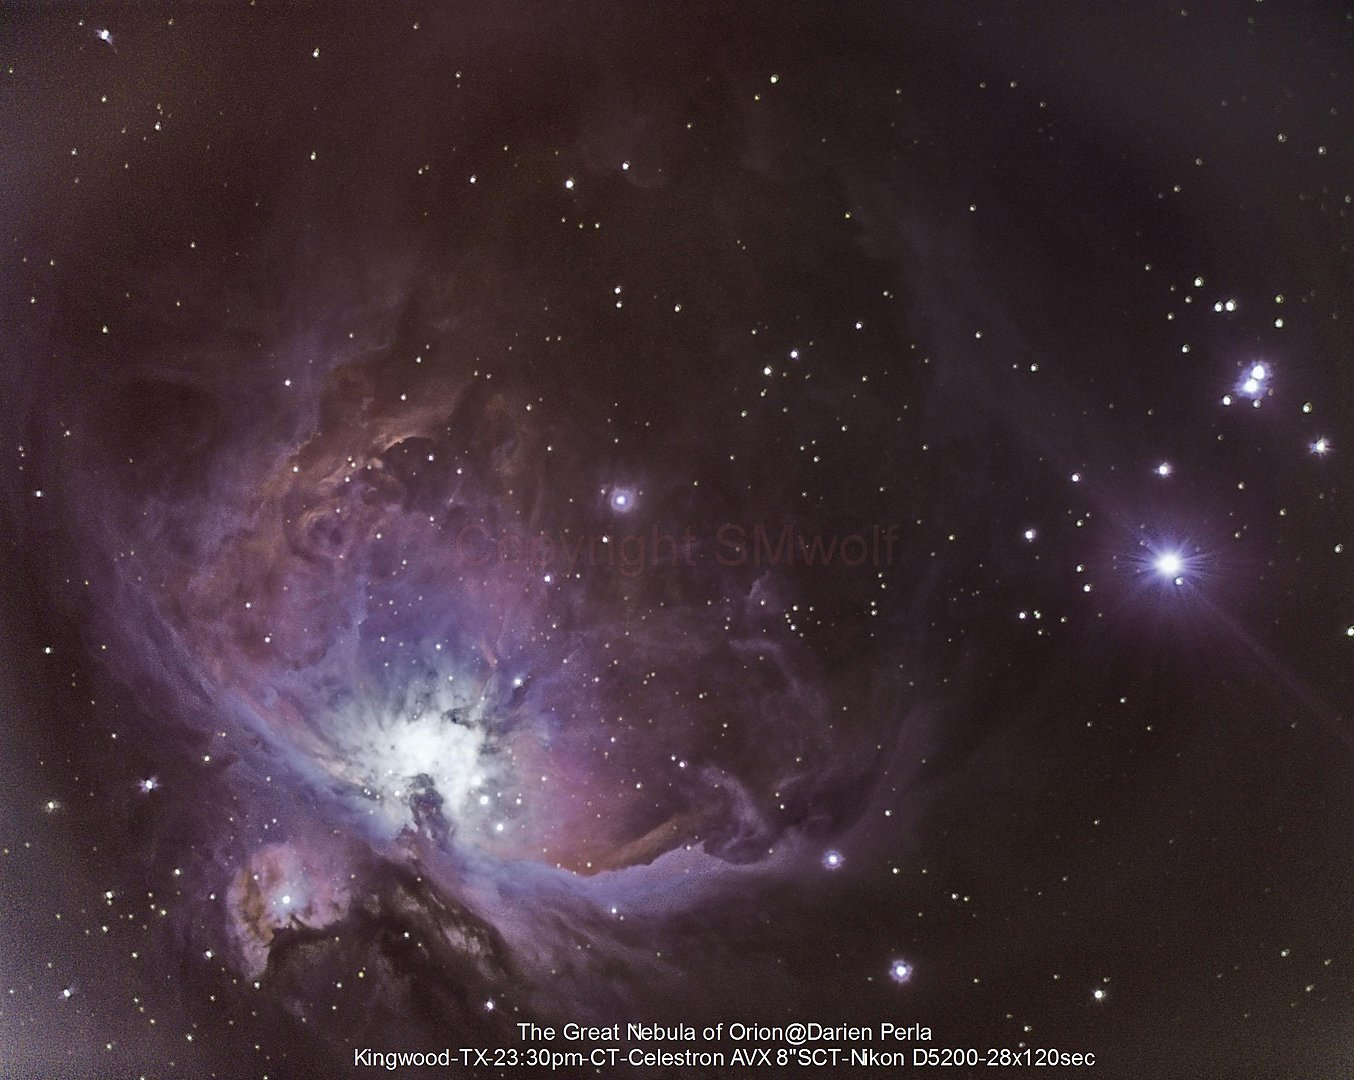 Orion Nebula (M 42), De Mairan's Nebula (M 43) and NGC 1980